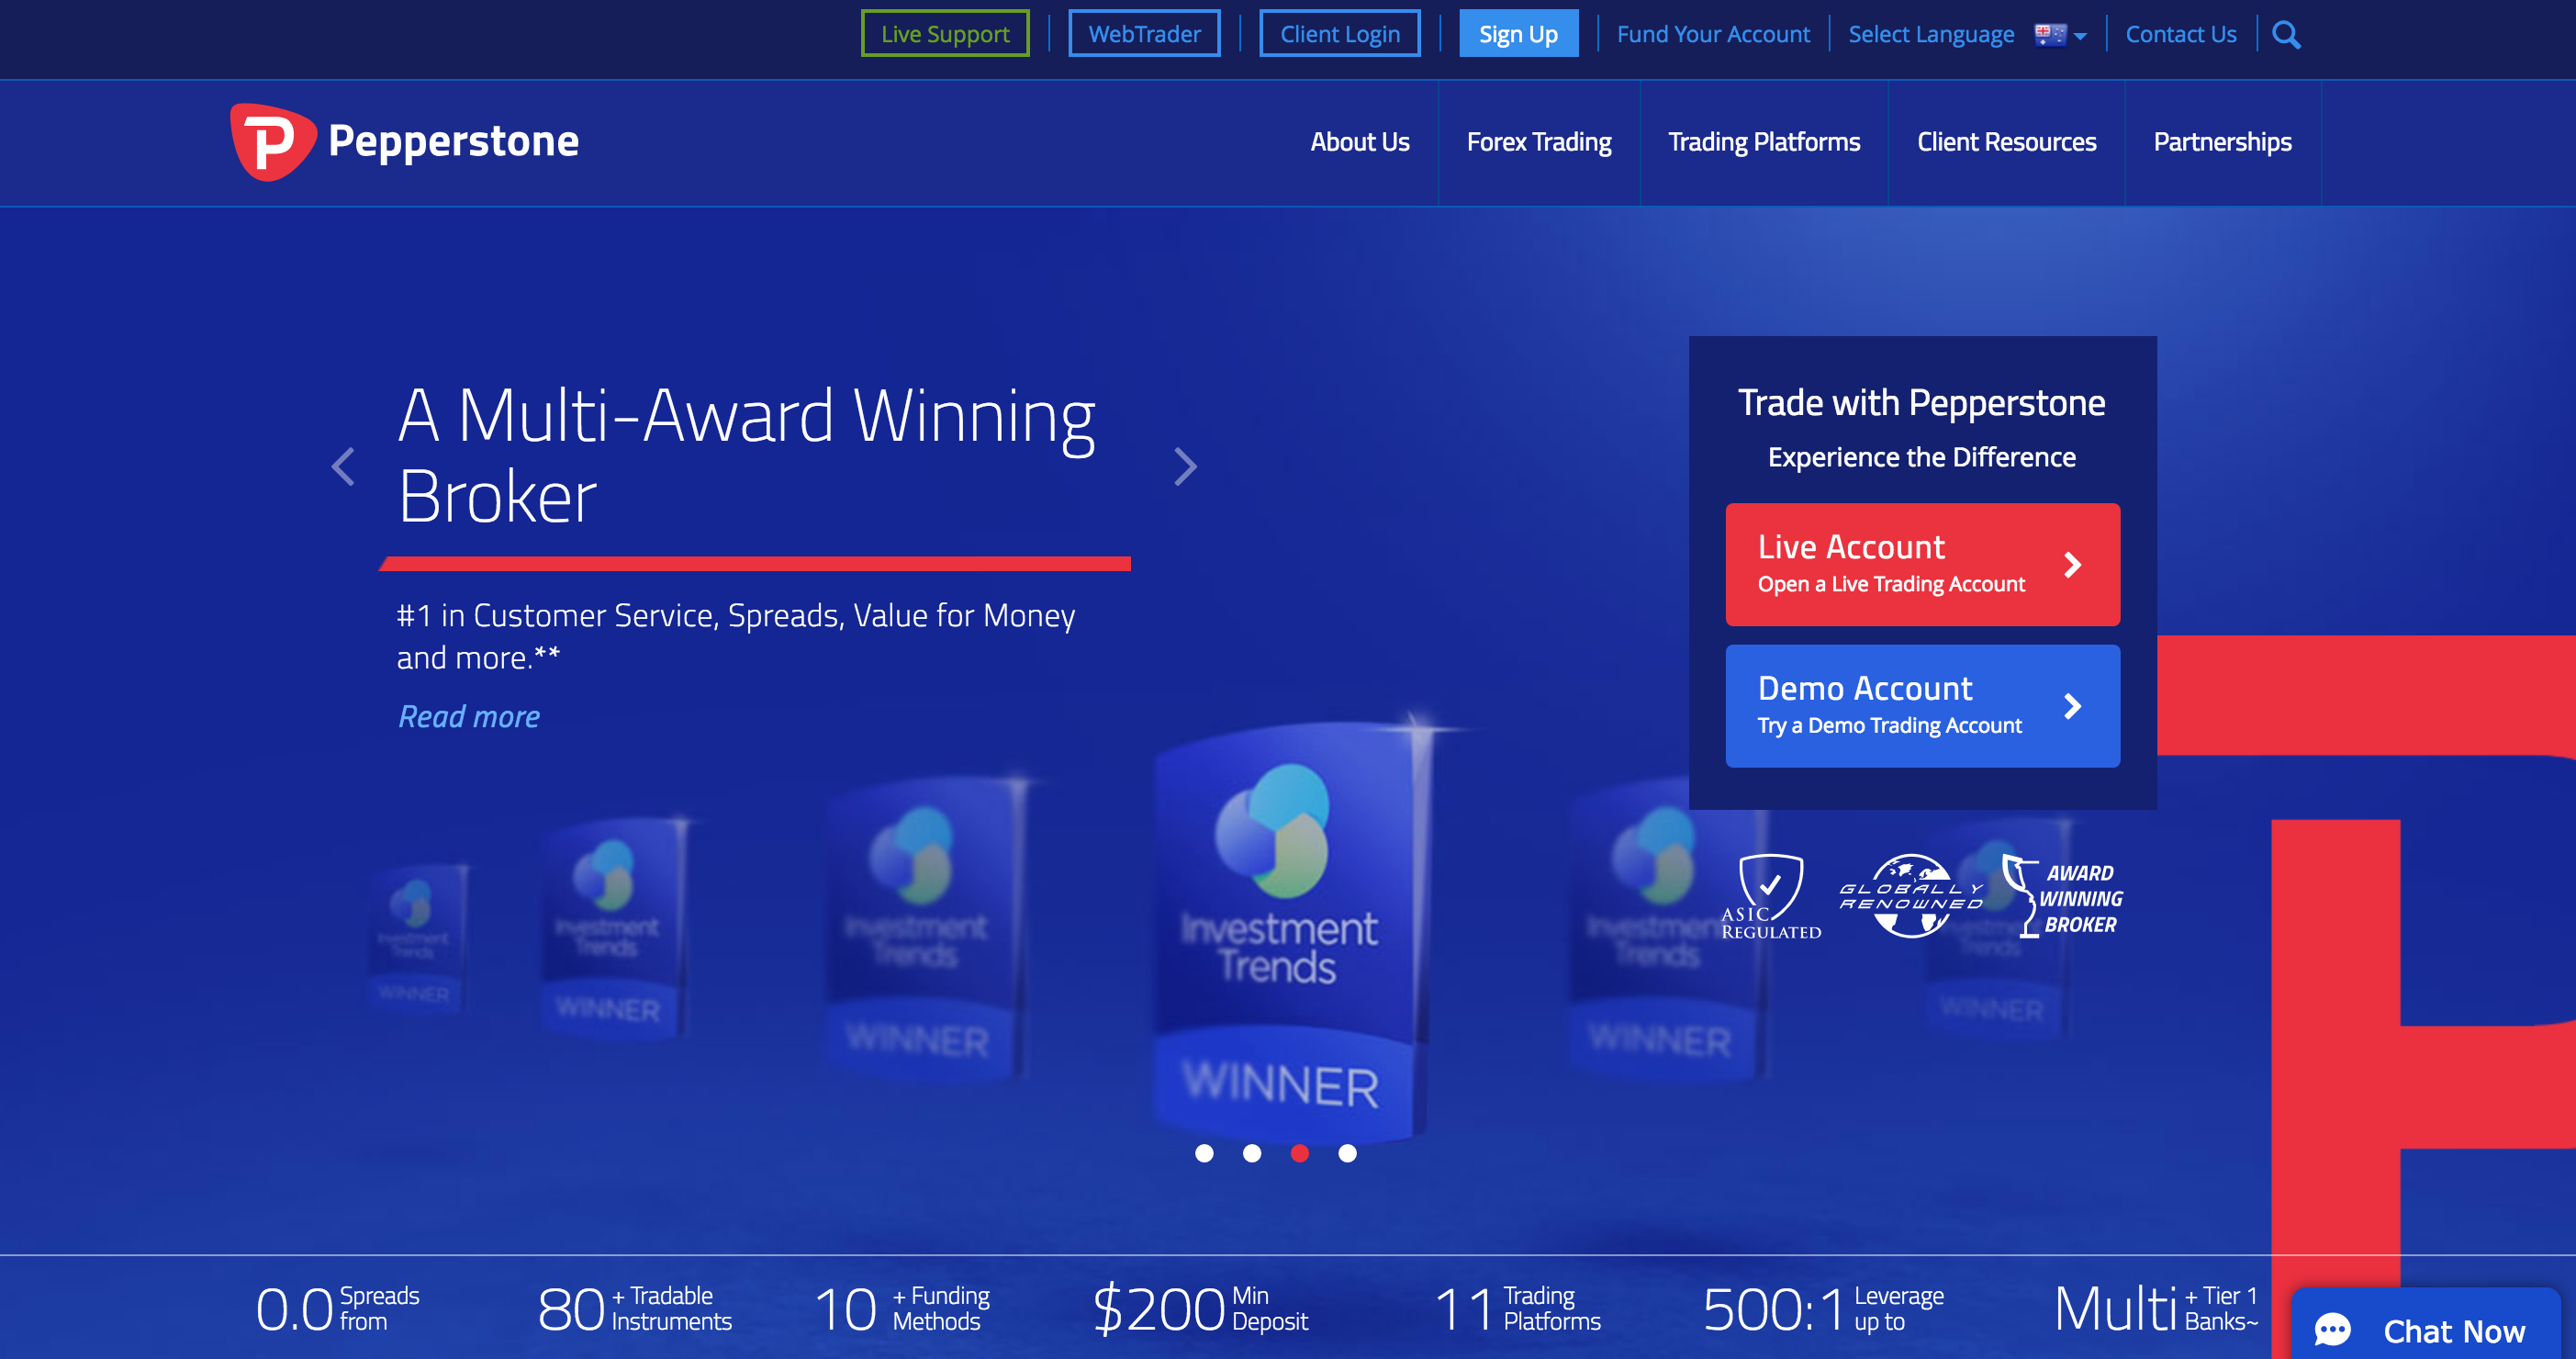 Binary options brokers accepting paypal funding account world cup betting odds ladbrokes jobs